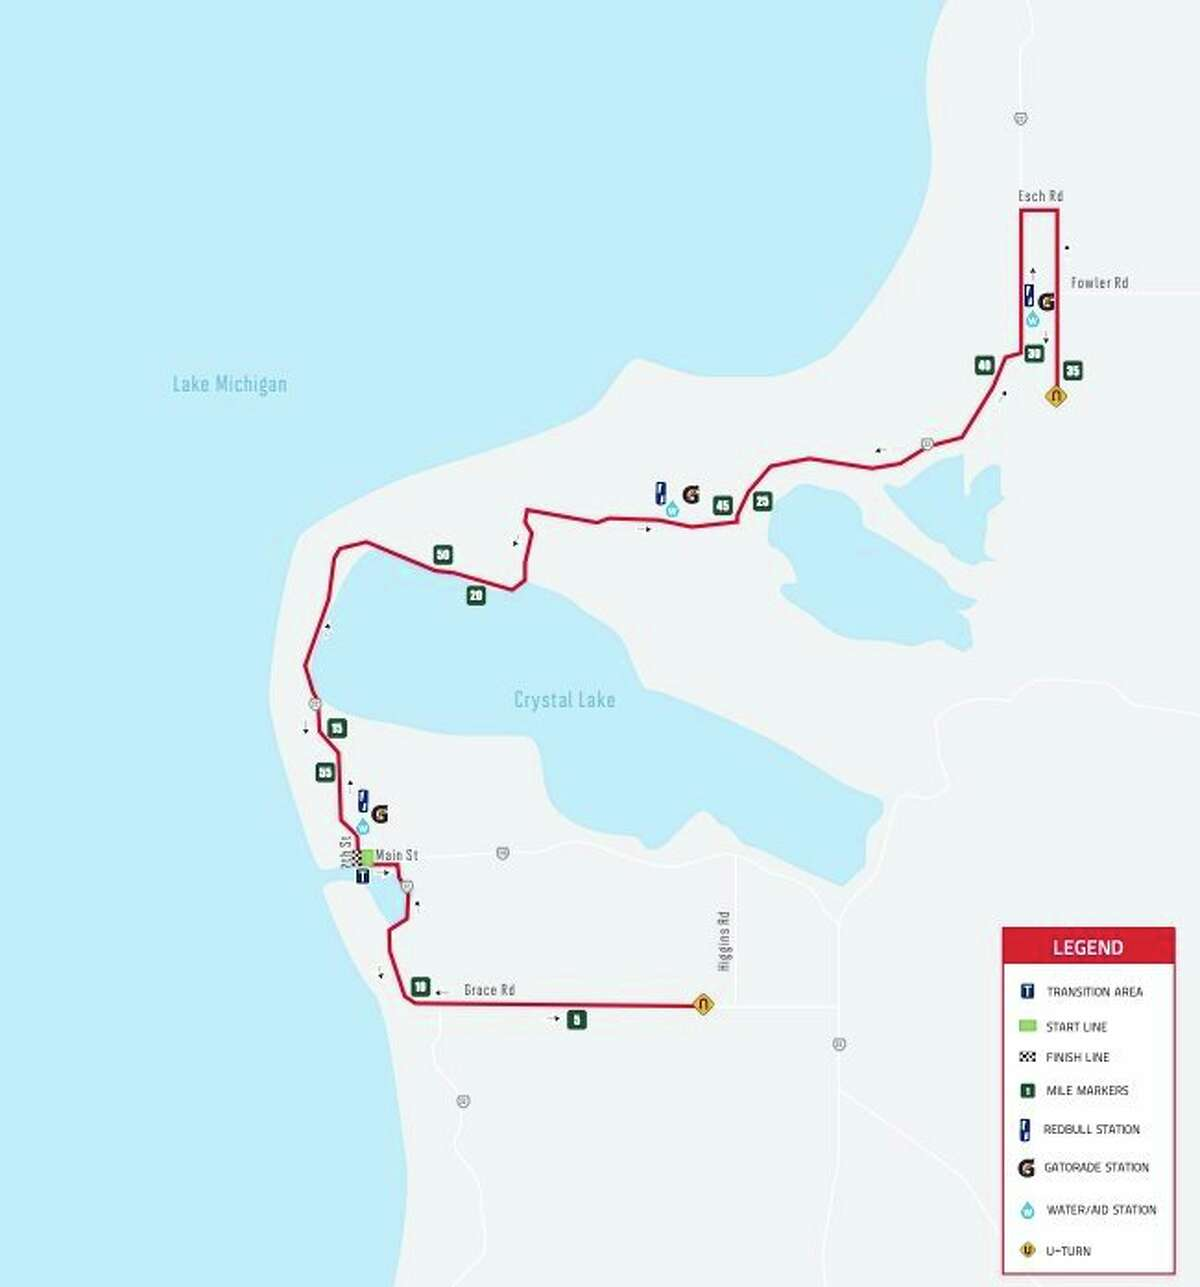 The Ironman cycling mainly takes place on M-22 from Little Platte Lake in the north down to south of Crystal Lake and Betsie Bay on Grace Road. (Courtesy map)